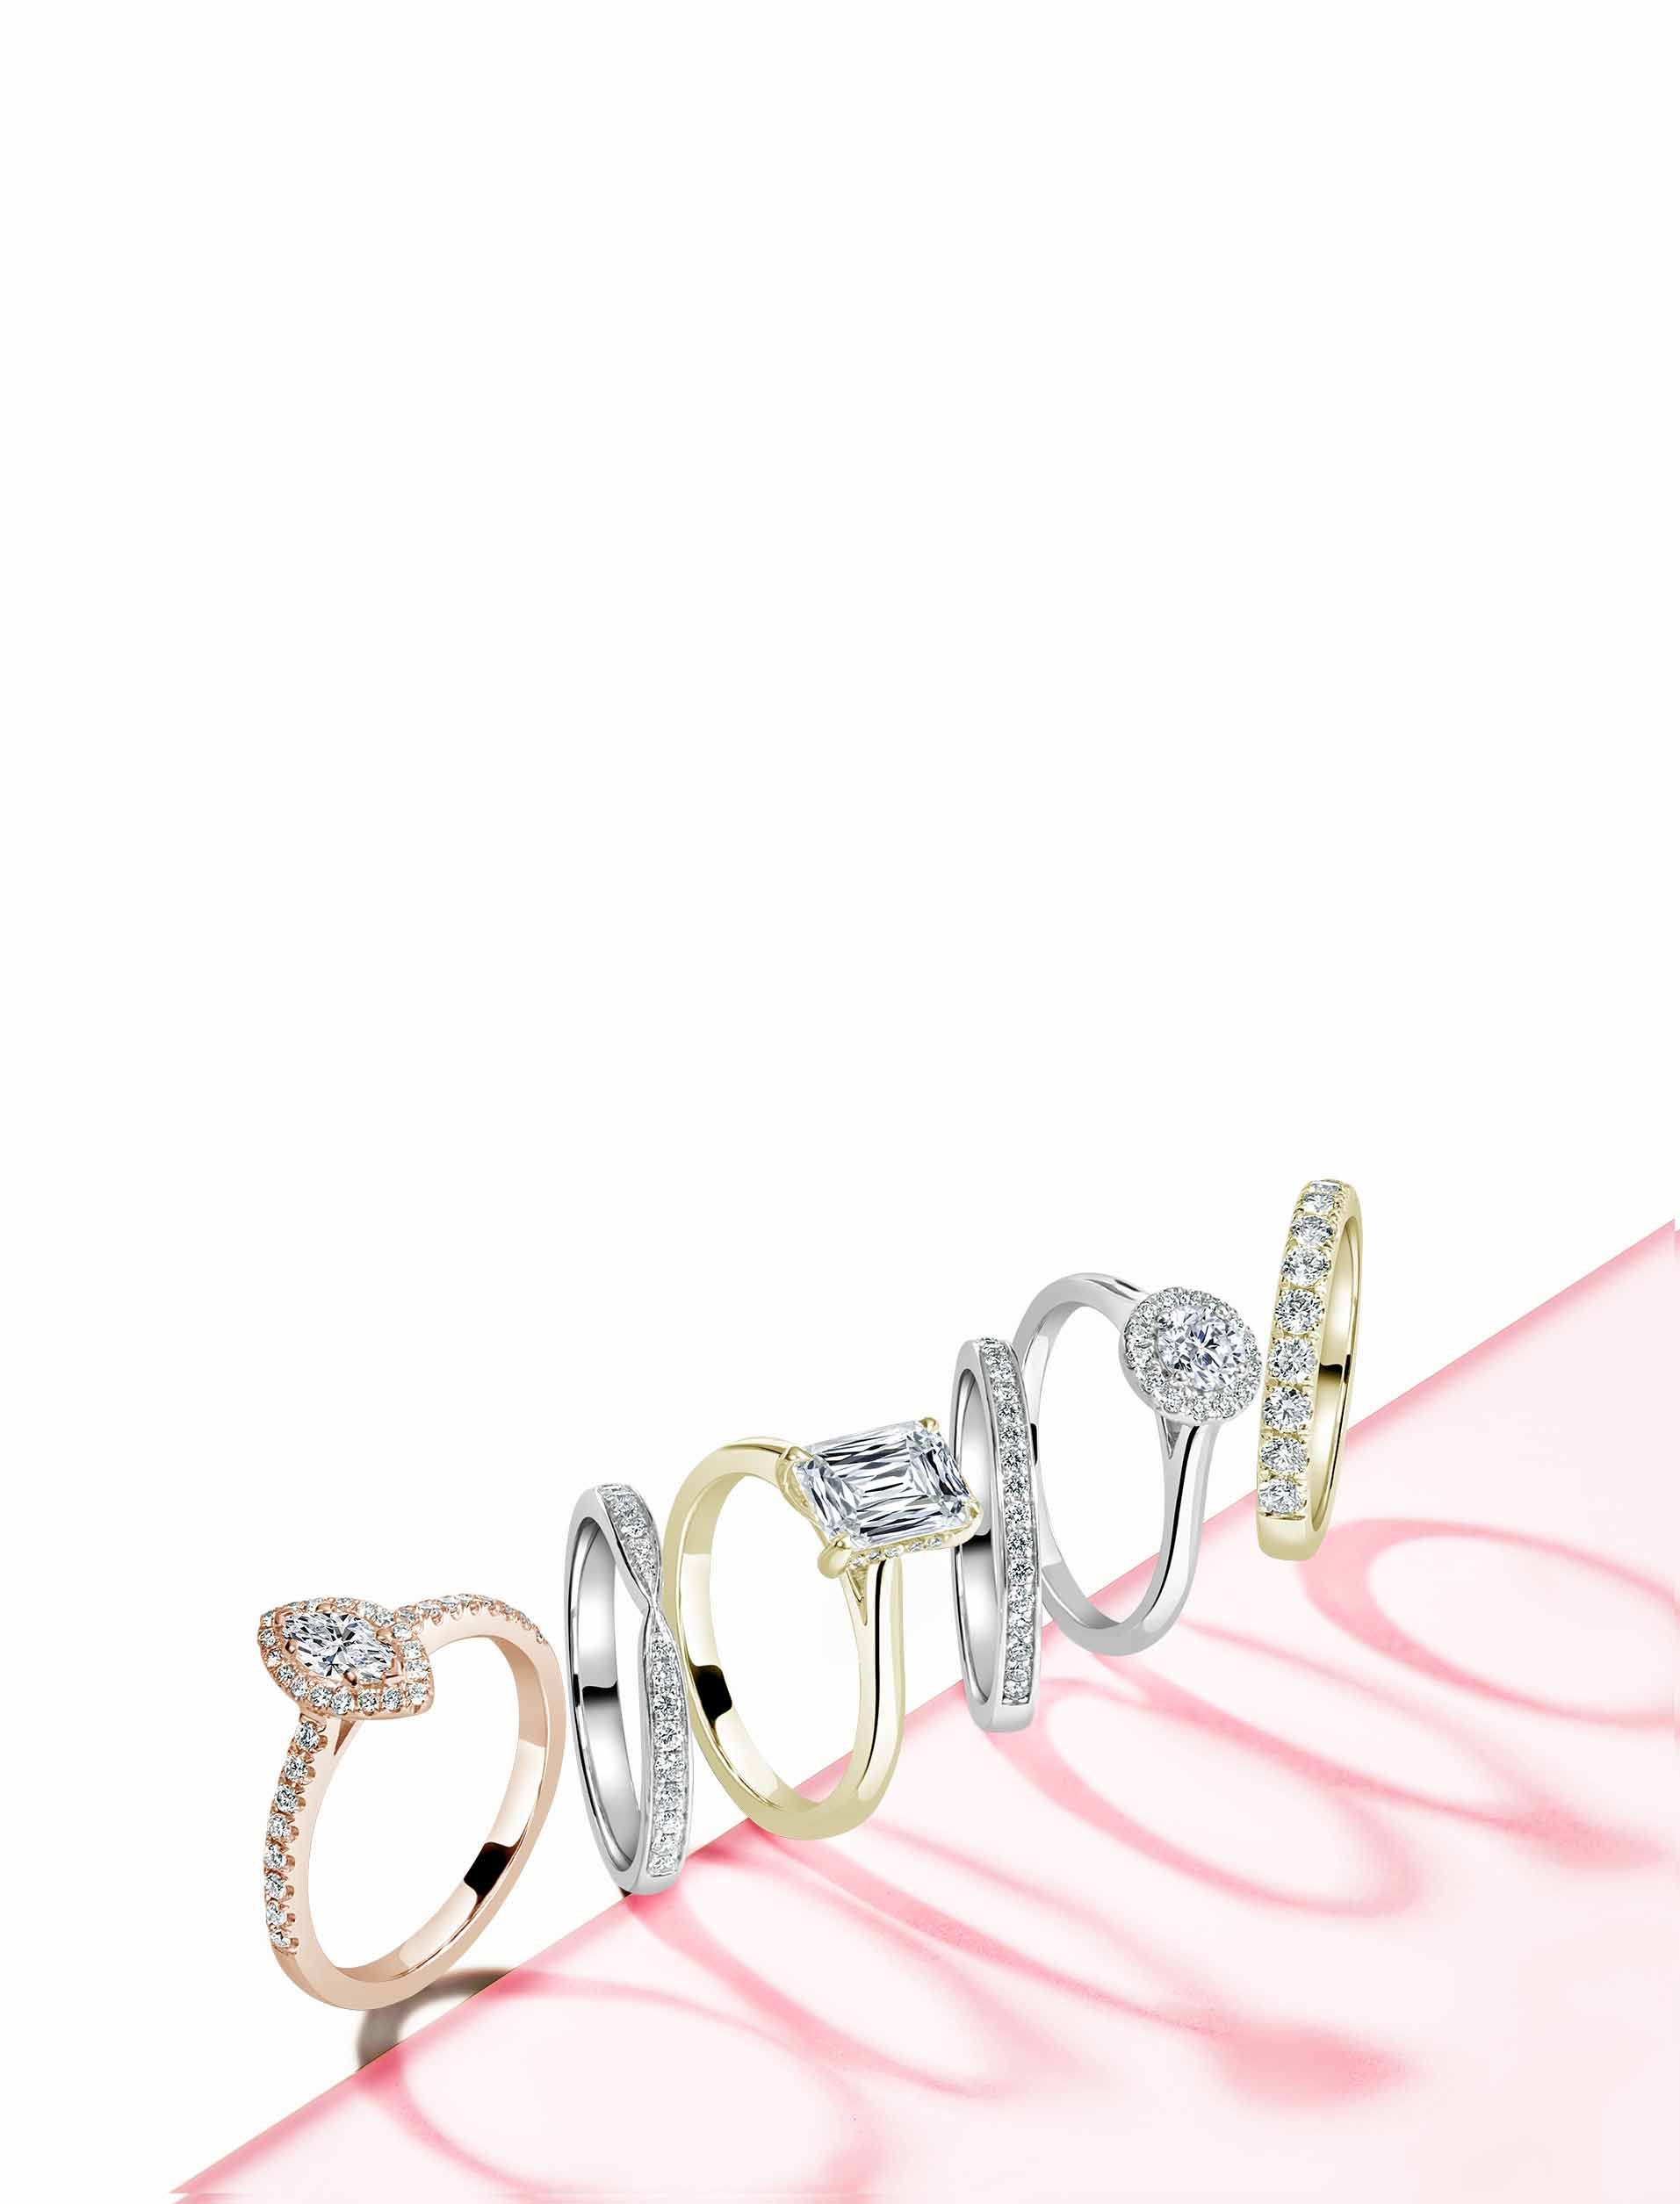 White Gold Marquise Cut Engagement Rings - Steven Stone